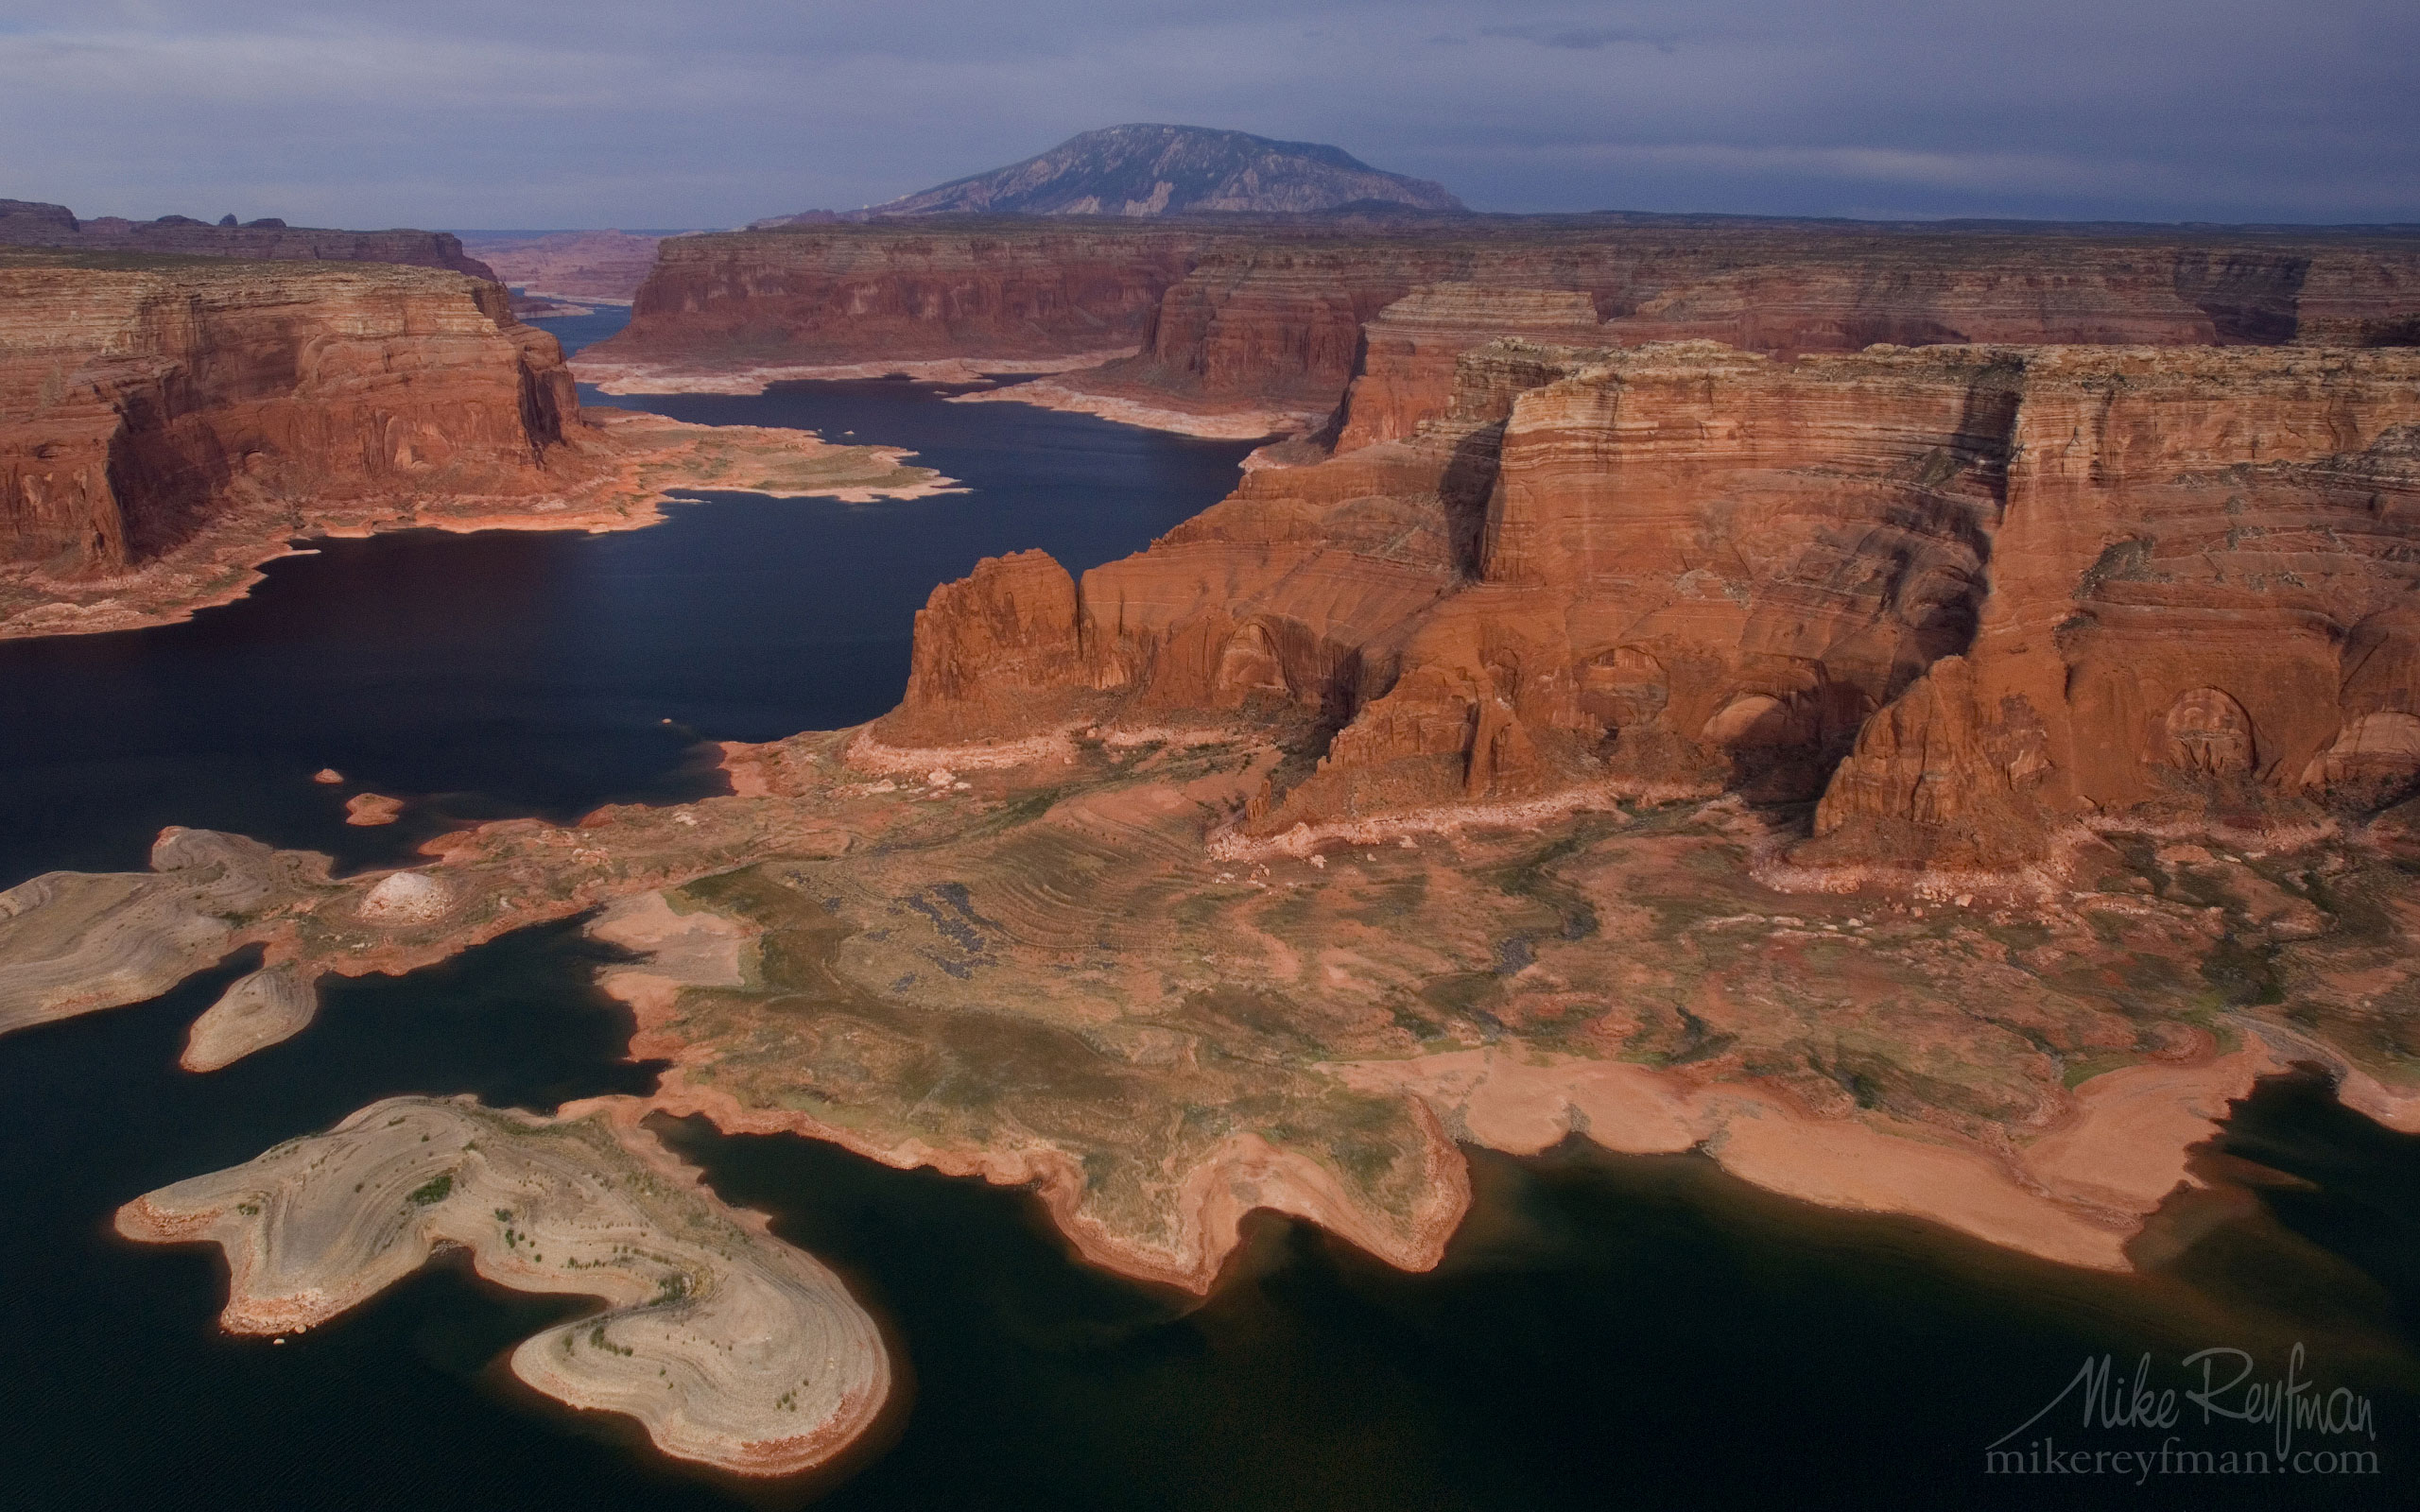 Rainbow Plateau and Distant View of Navajo Mountain. Glen Canyon NRA, Lake Powell, Utah/Arizona, USA. Aerial. 038-LP3_MER7038.jpg - Lake Powell, Glen Canyon NAR. Colorado and Sun Juan Rivers. Utah/Arizona, USA  - Mike Reyfman Photography